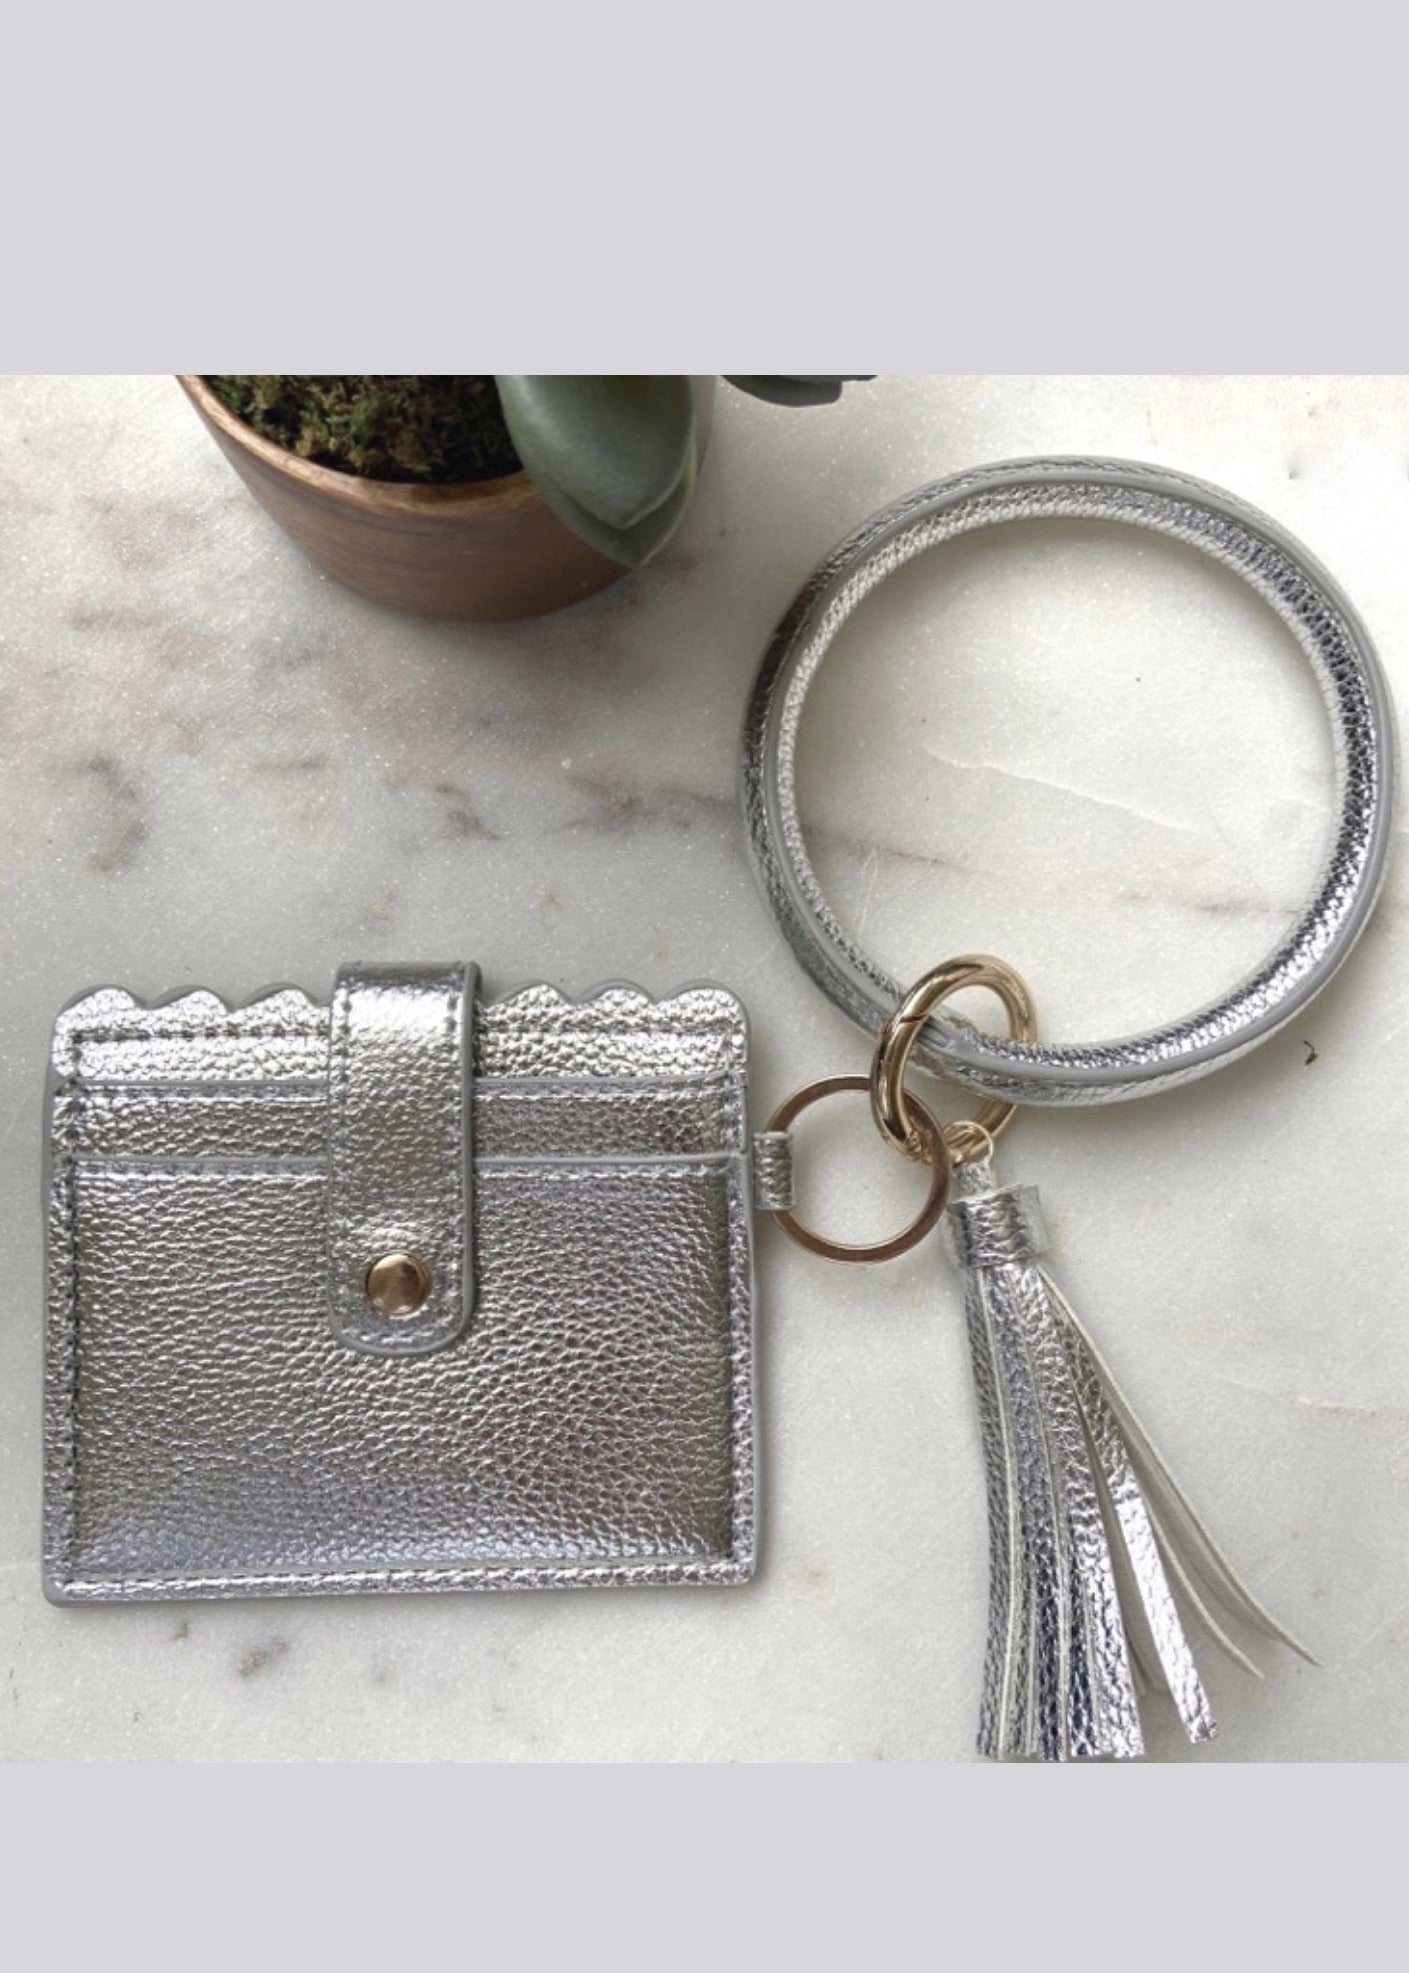 Key Ring Bracelet with Cardholder